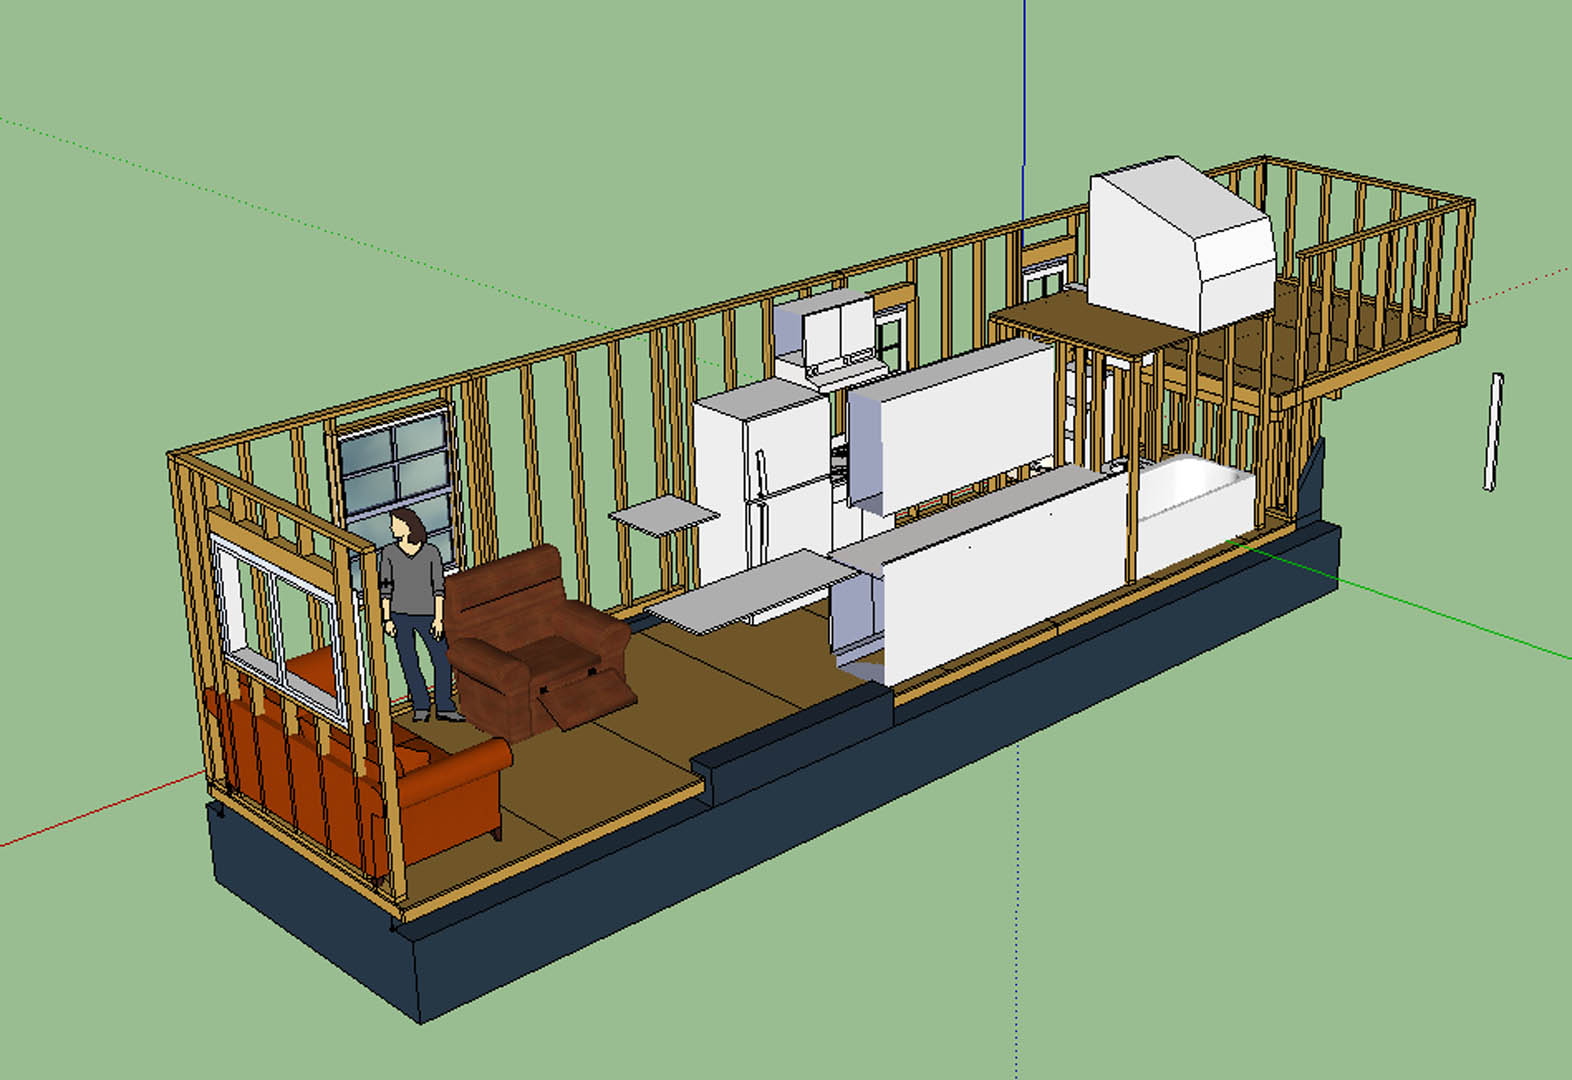 Petumbly boy the updated layout tiny house for Small house layout design